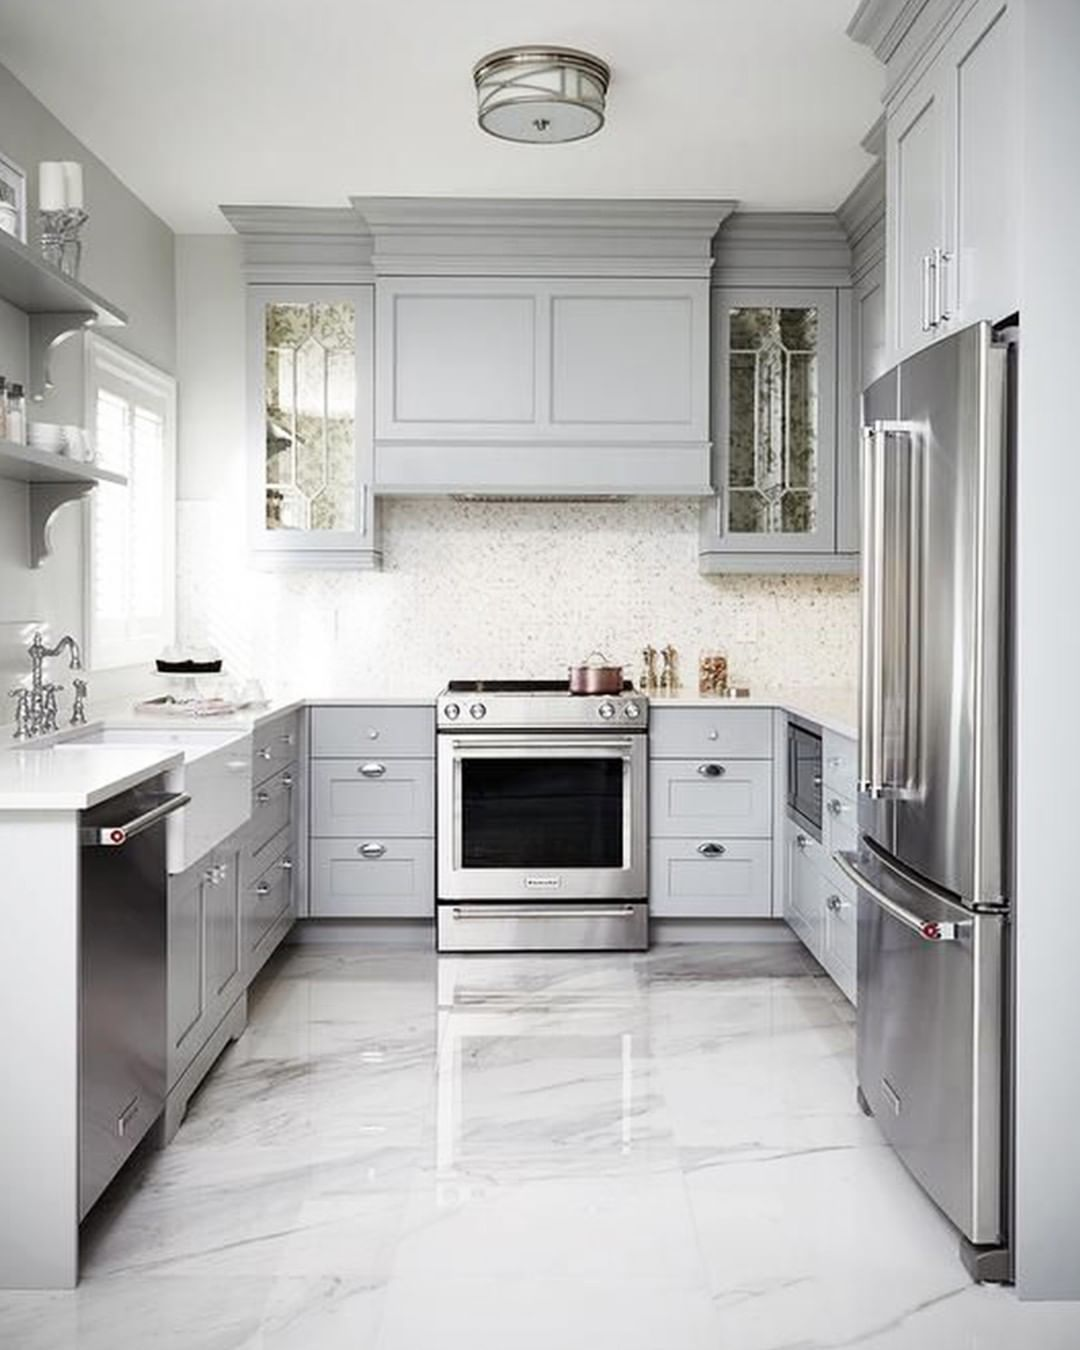 Floor Accents This marble kitchen flooring adds such a modern yet